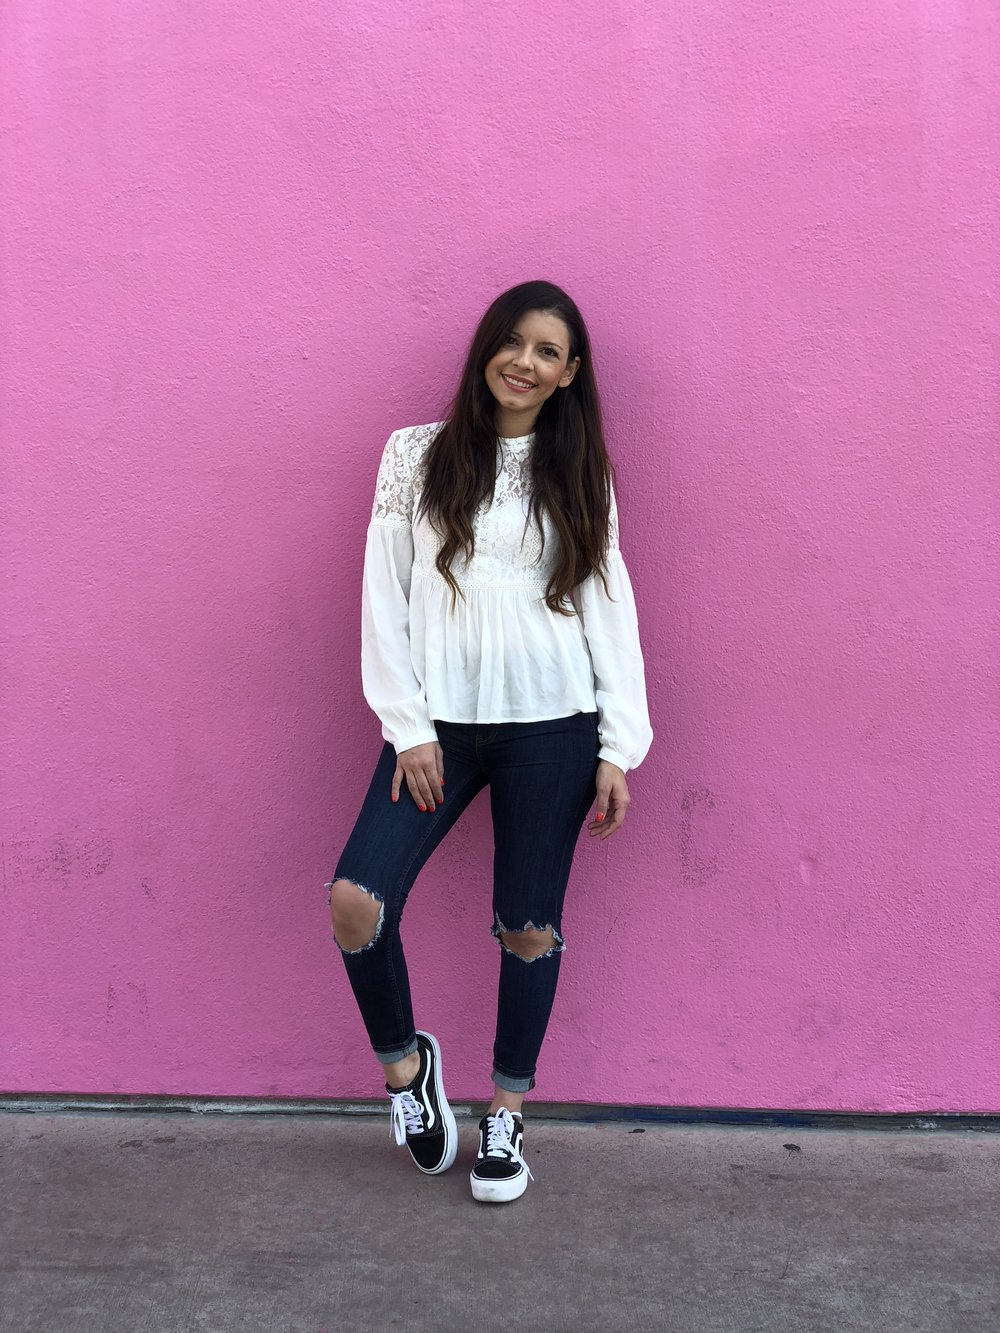 1. Visit the Pink Wall - Take photos at the Paul Smith Pink Wall. This photo is unedited and unfiltered.